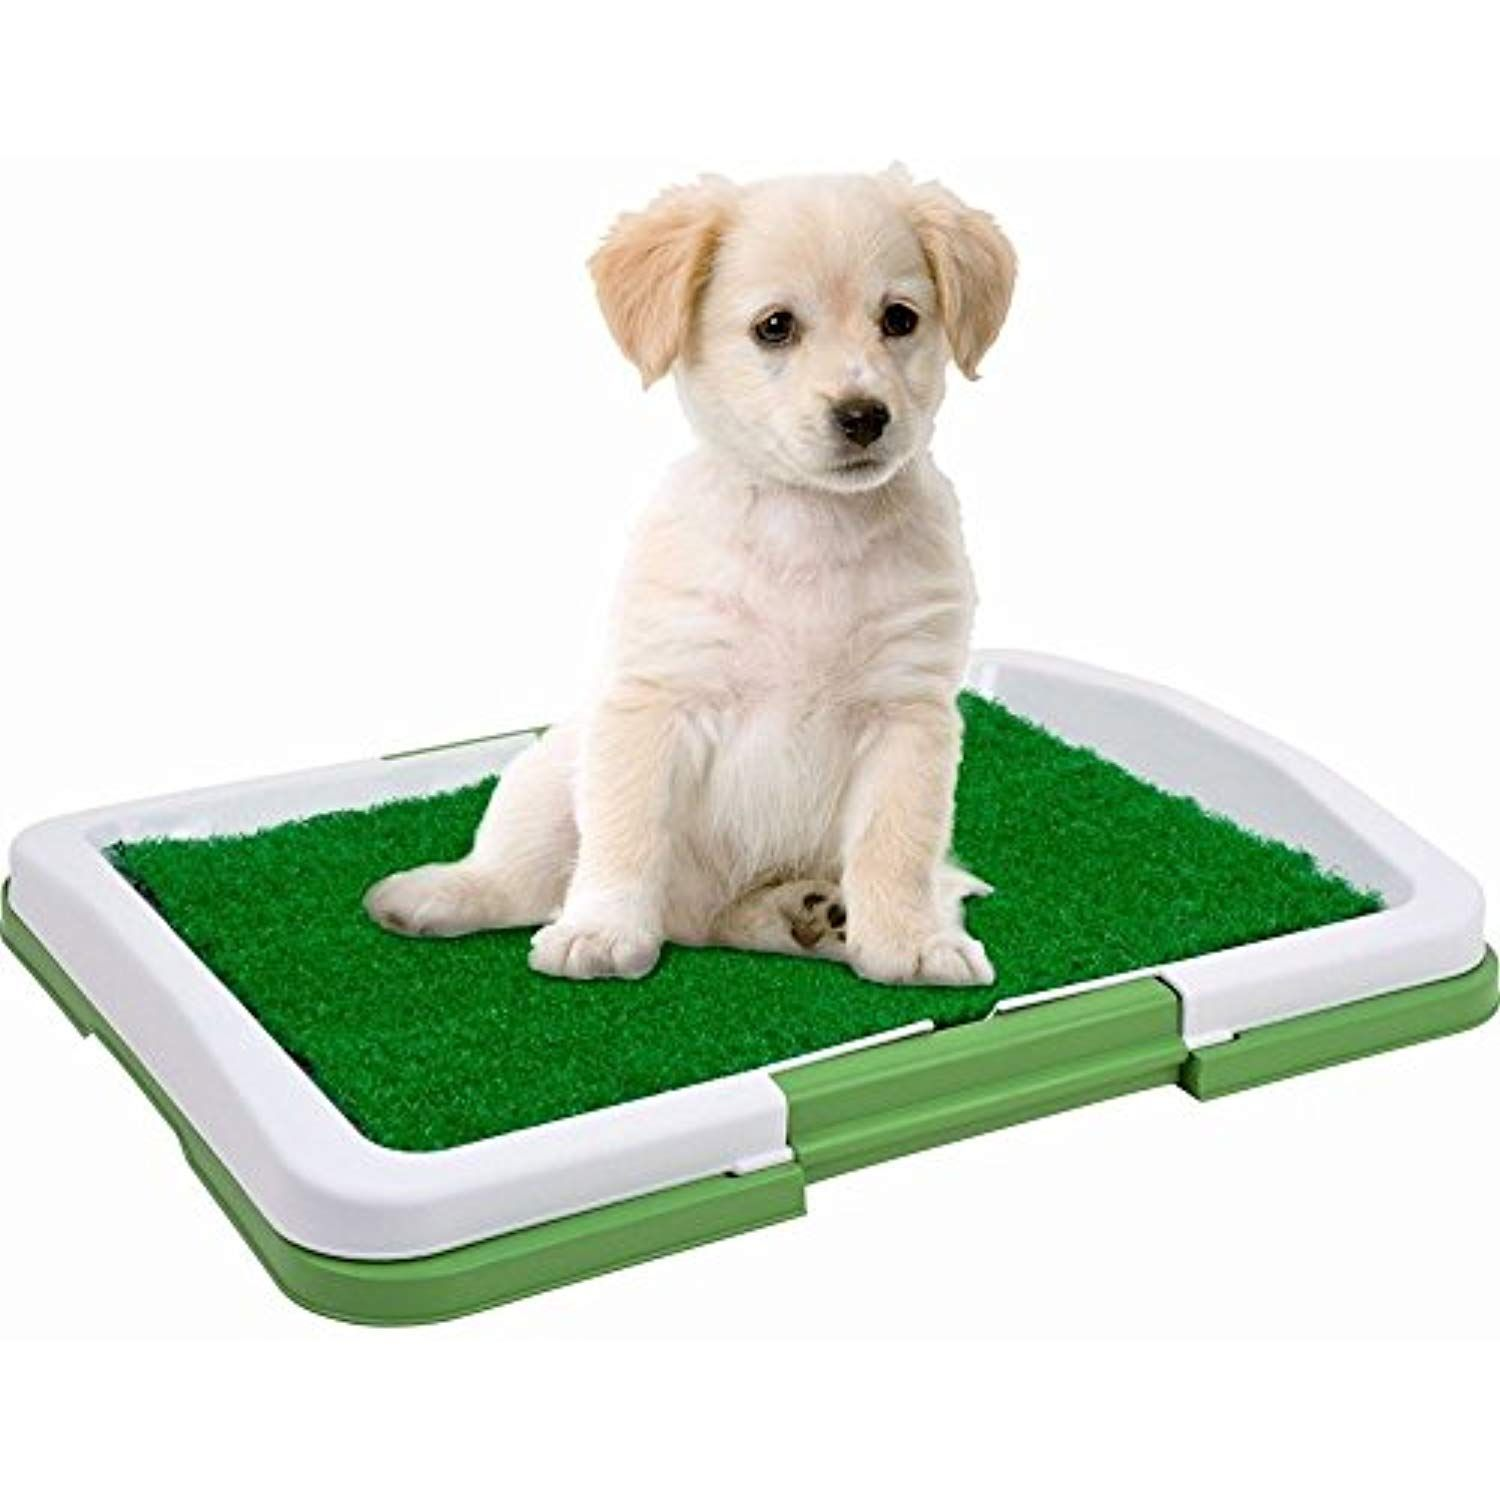 Be Good Pet Training Pad With Real Grass Puppy Pads Puppy Potty